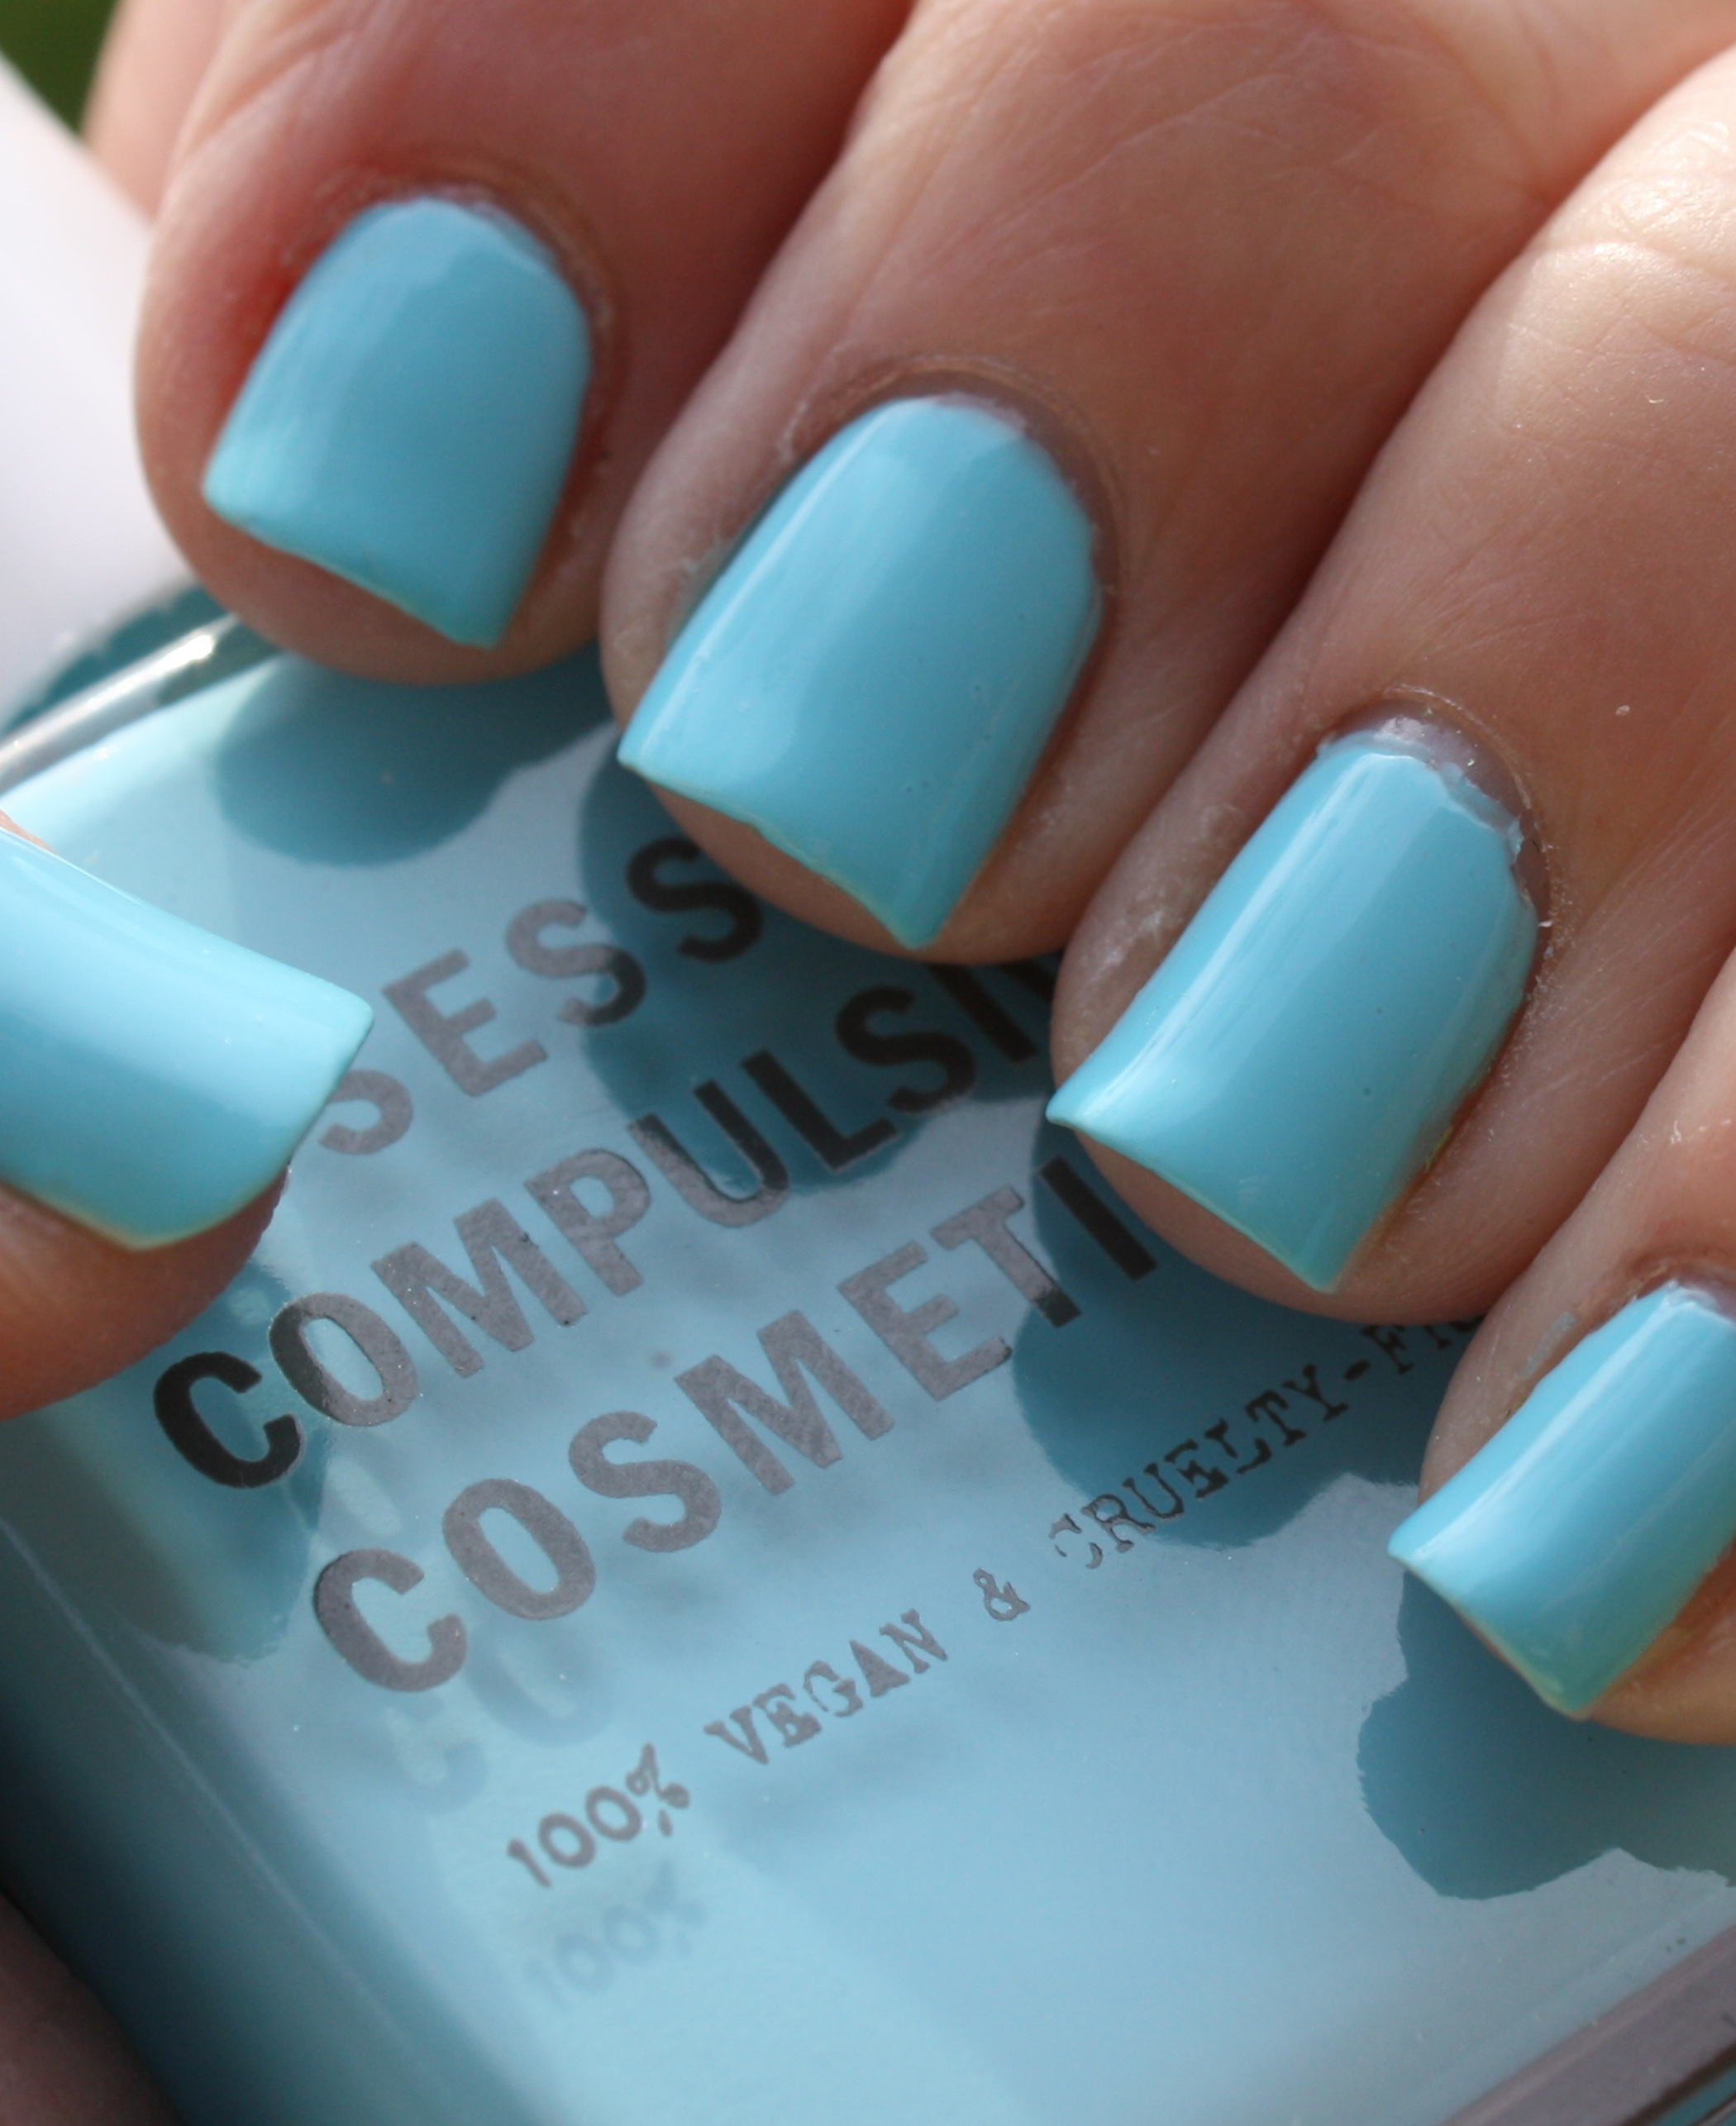 Obsessive Compulsive Cosmetics Pool Boy – horrendous color